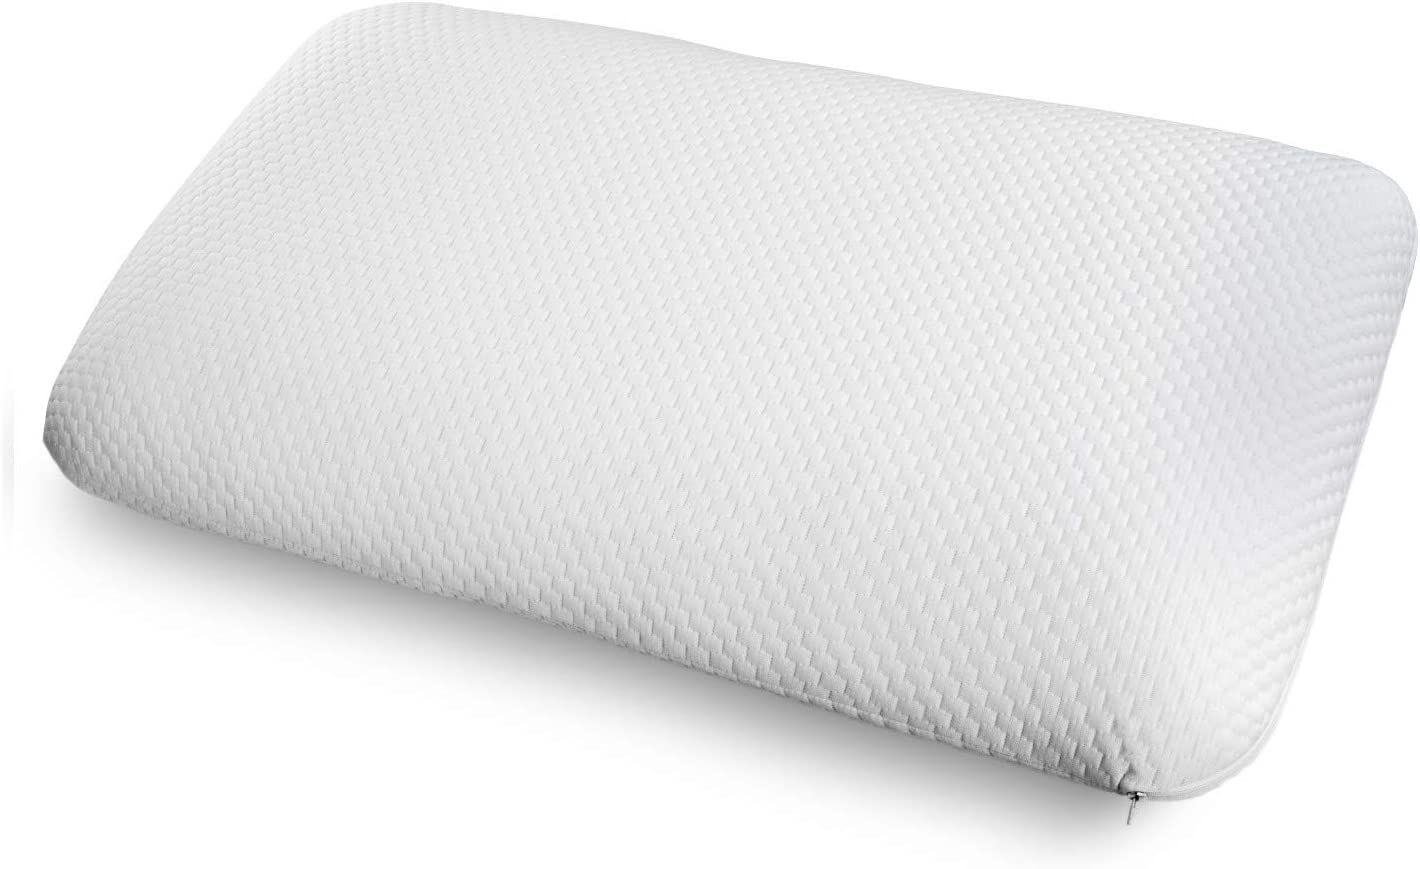 Ambesonne Foam Pillow with Ventilation Holes and Double Cover, Ultimate Comfort Visco Elastic Foam with Brushed Microfiber Sham and Removable and Washable Pillowcover, 36